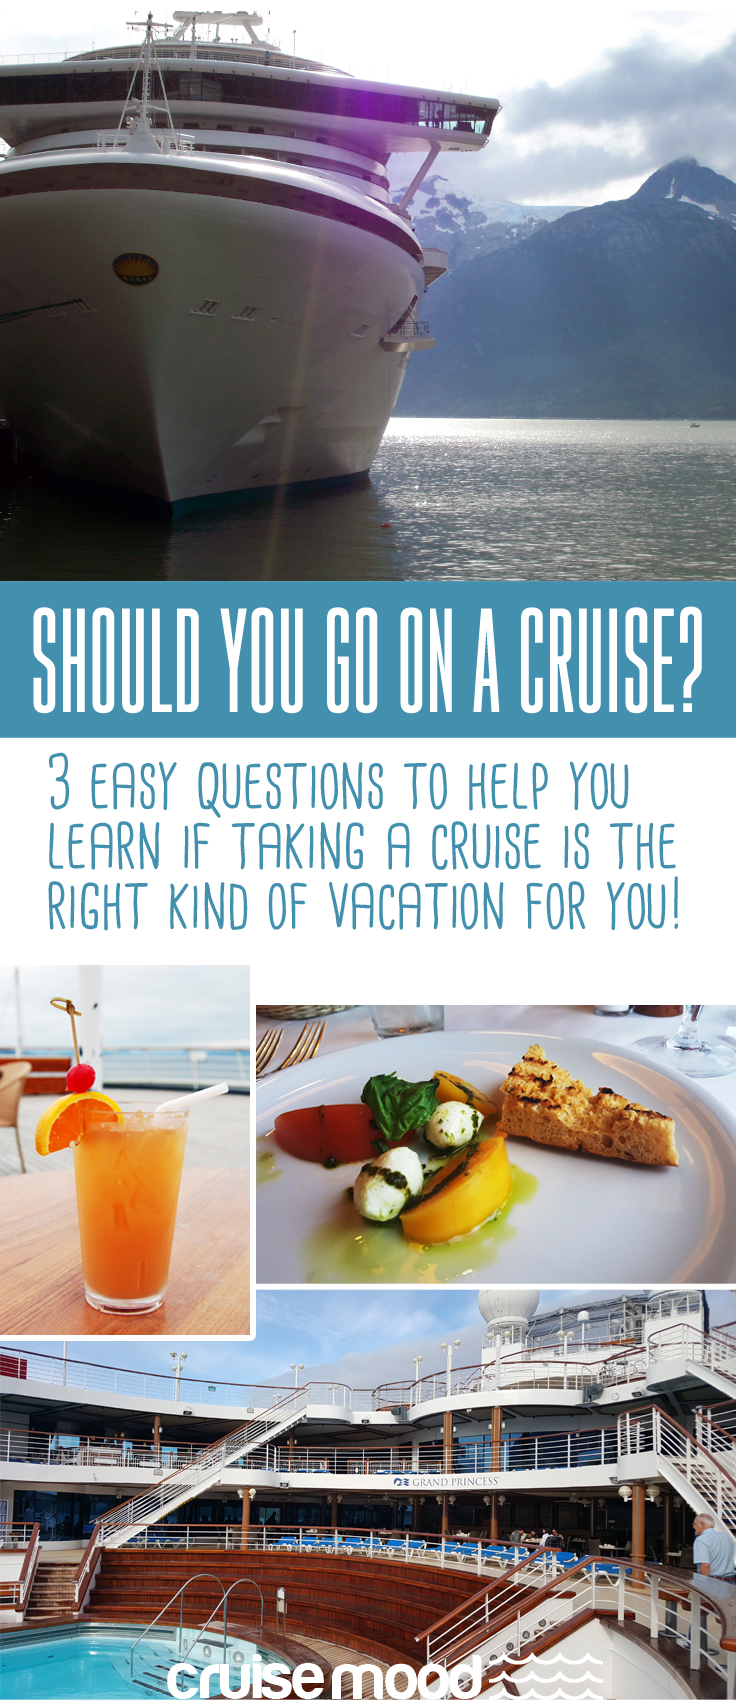 Should You Go on a Cruise? Honest advice from a cruise addict that might surprise you! Answer three short questions to see if a cruise is the right choice.